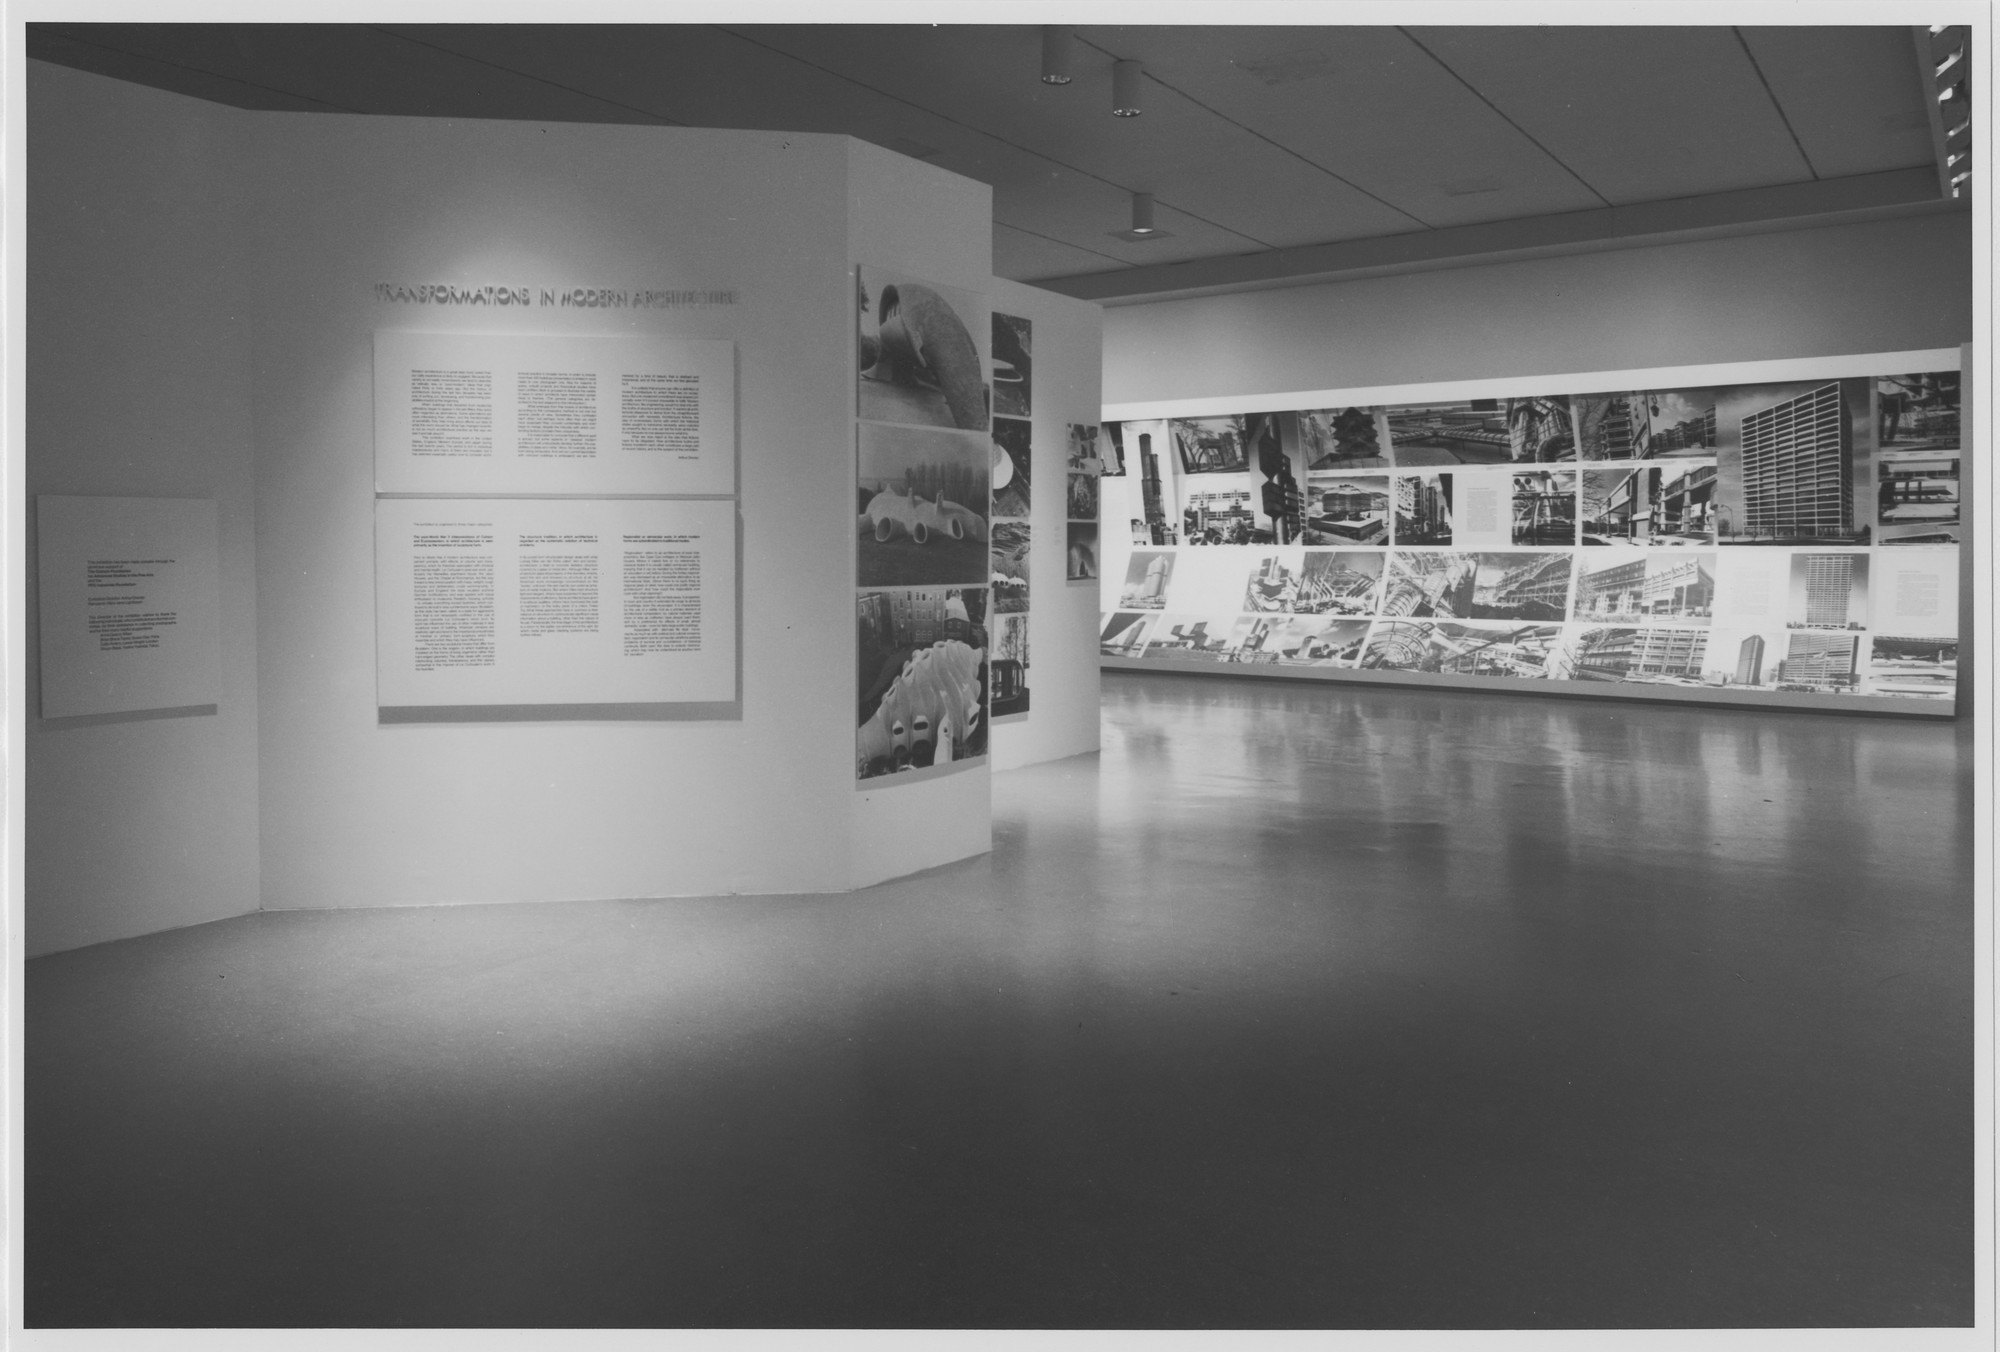 "Installation view of the exhibition, ""Transformations in Modern Architecture"" February 21, 1979–April 24, 1979. Photographic Archive. The Museum of Modern Art Archives, New York. IN1250.1. Photograph by Mali Olatunji."